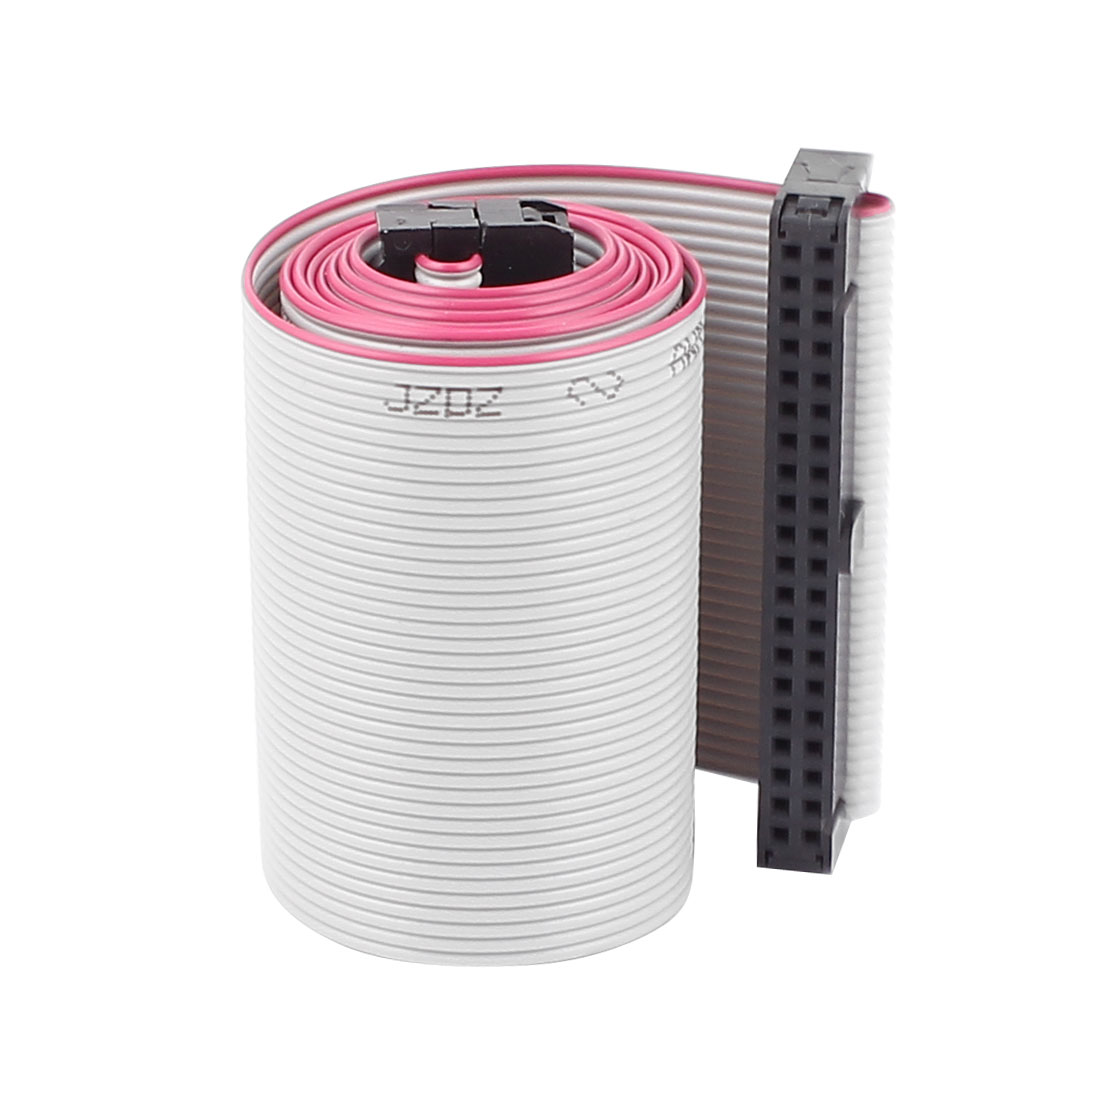 2.54mm Pitch 40 Pins 40 Wires F/F IDC Connector Flat Ribbon Cable 66cm Long